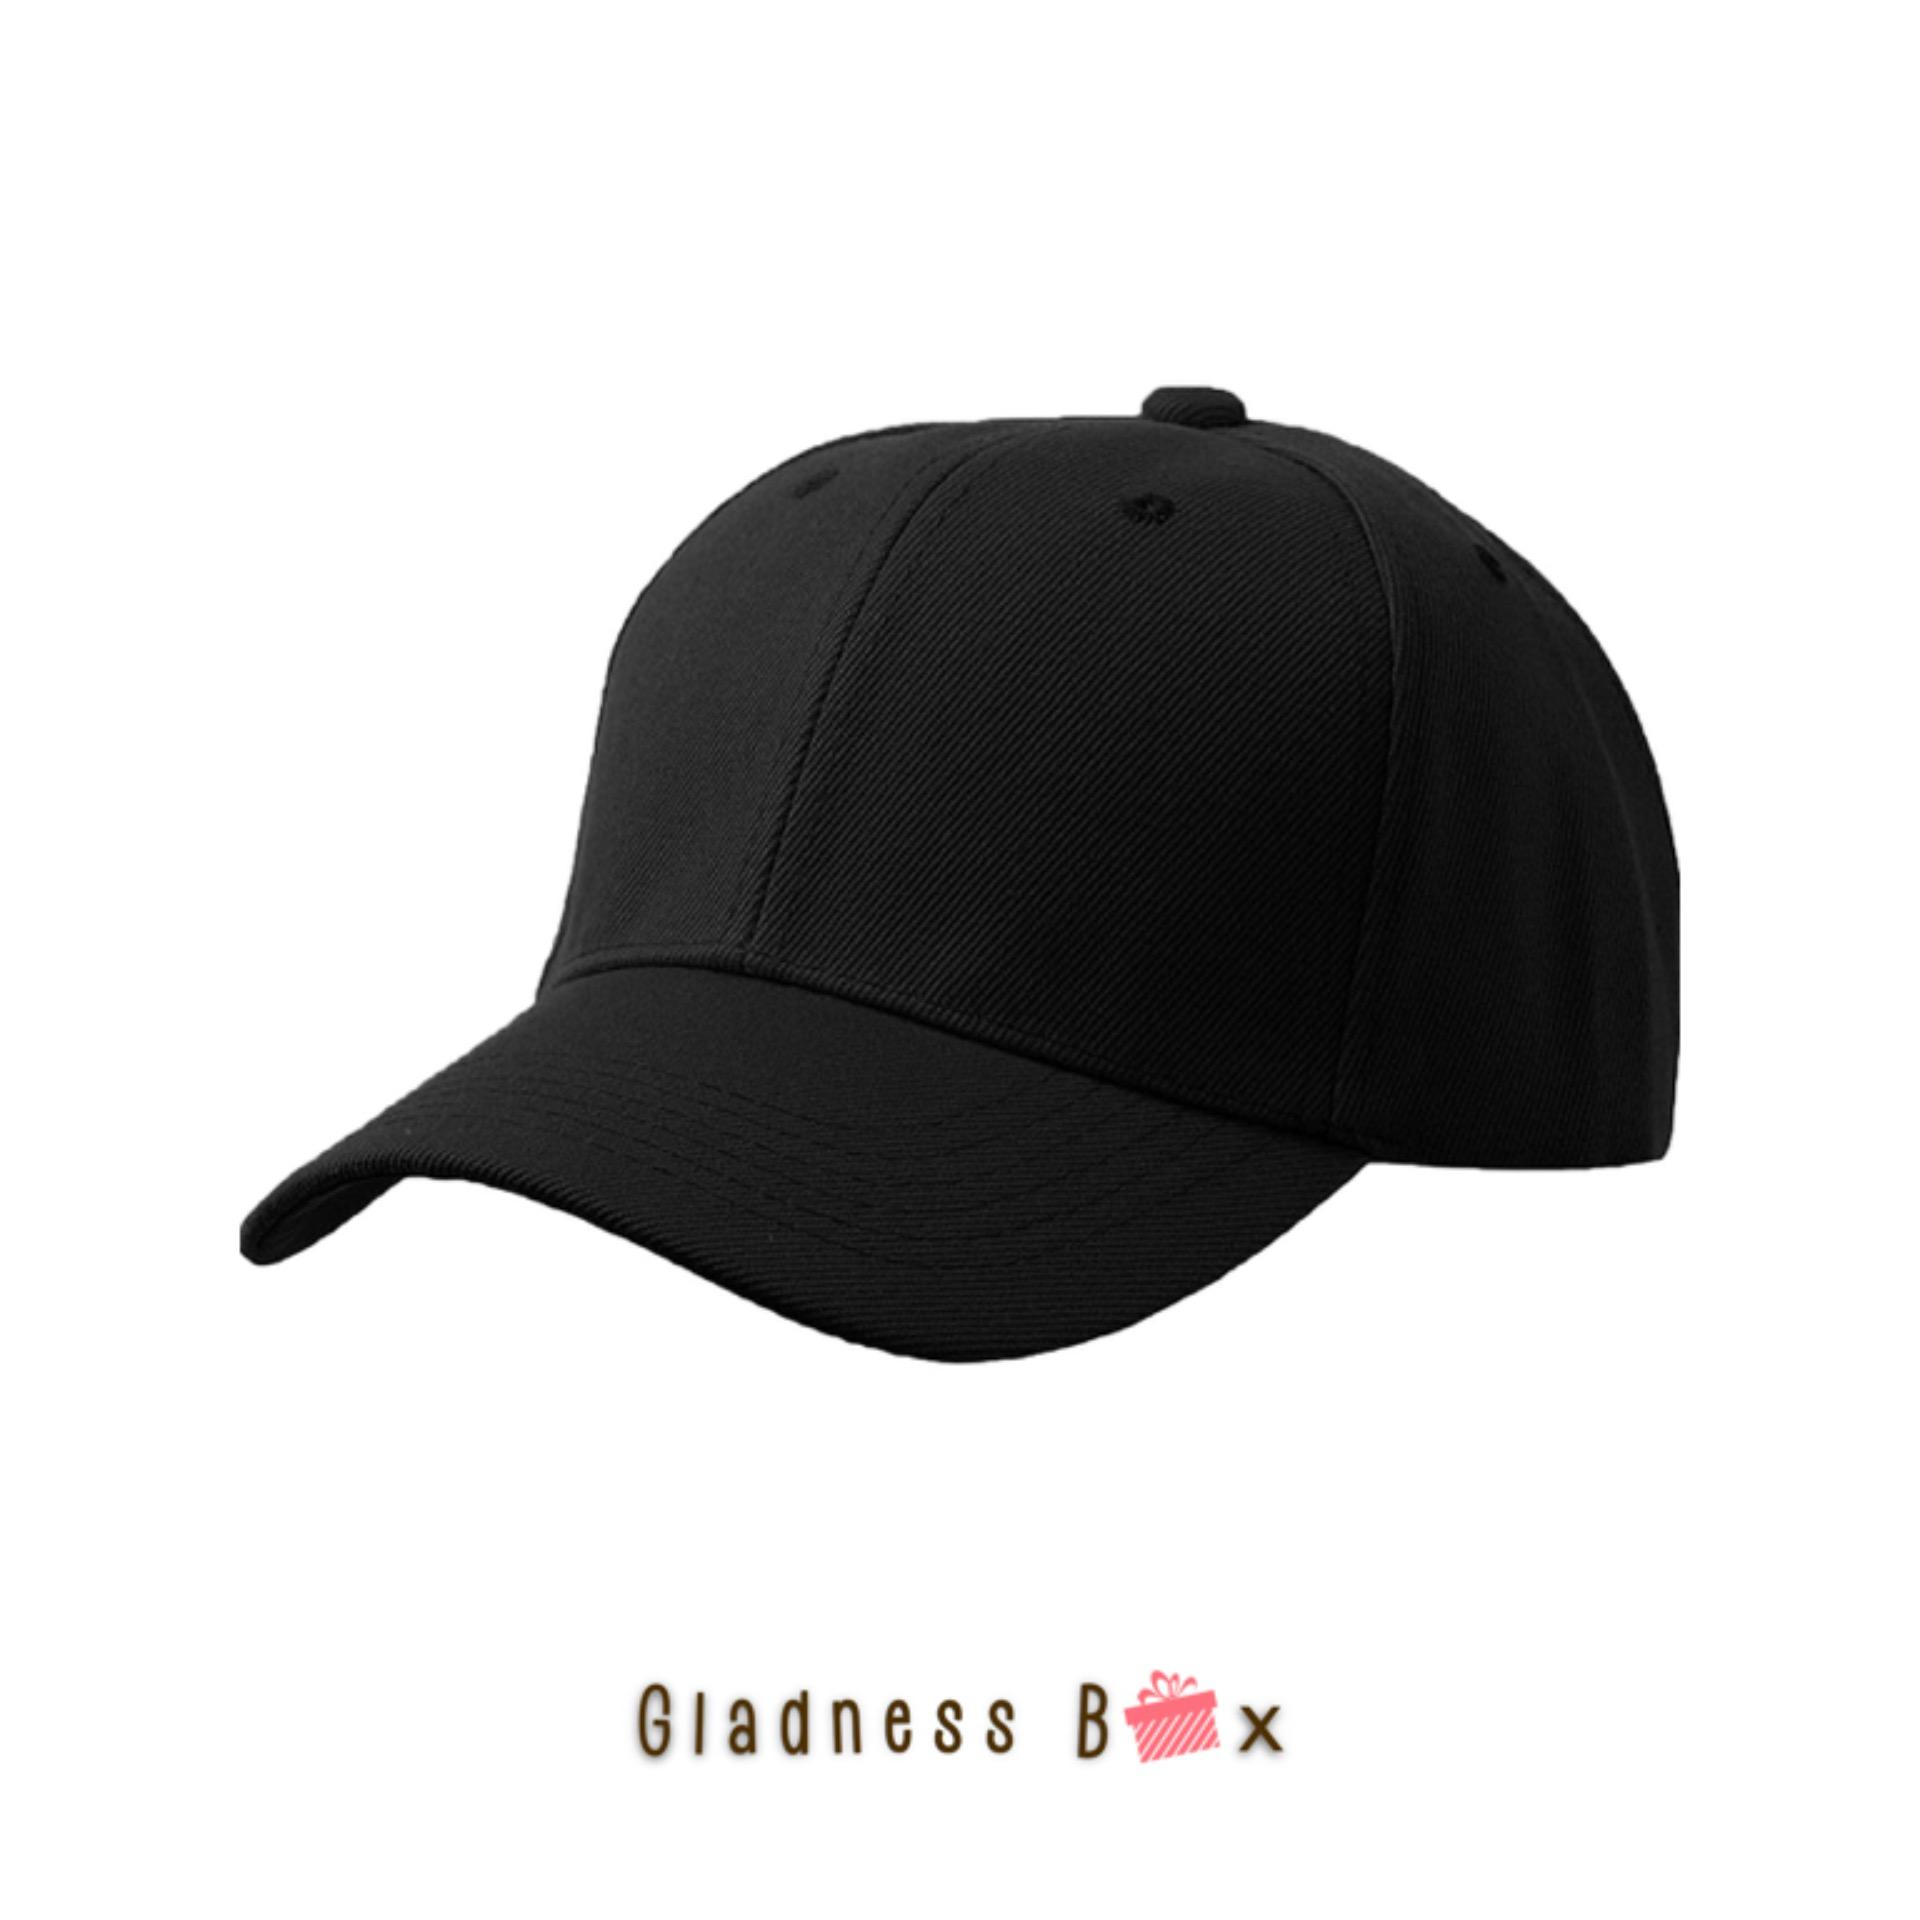 Gladness Box High Quality Plain Baseball Cap for Men Women Unisex e403f34b87f